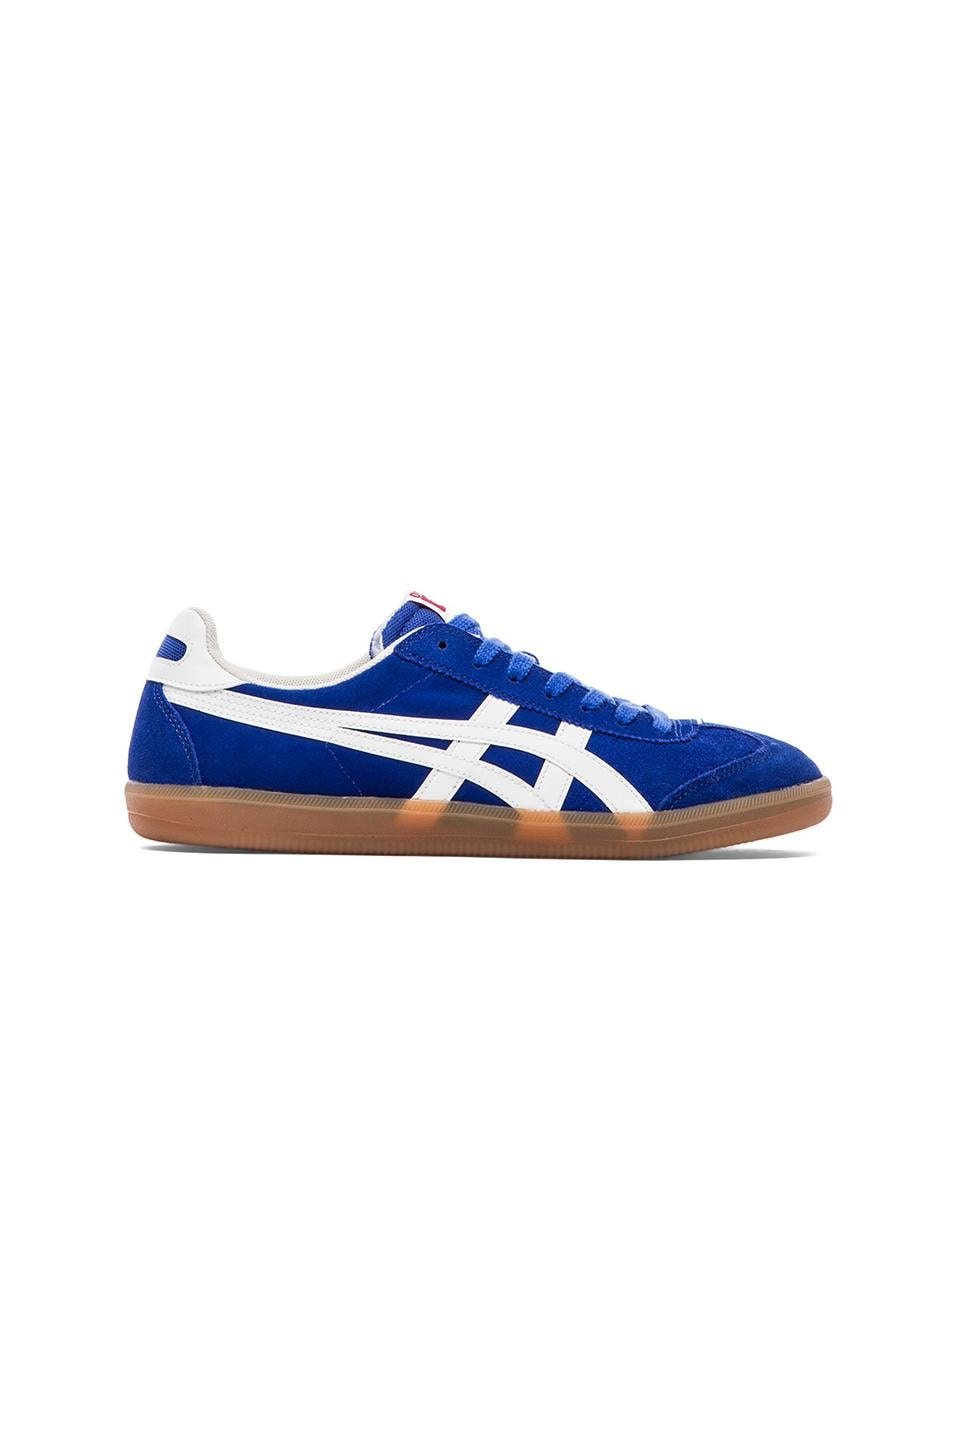 Onitsuka Tiger Tokuten in Dark Blue & White